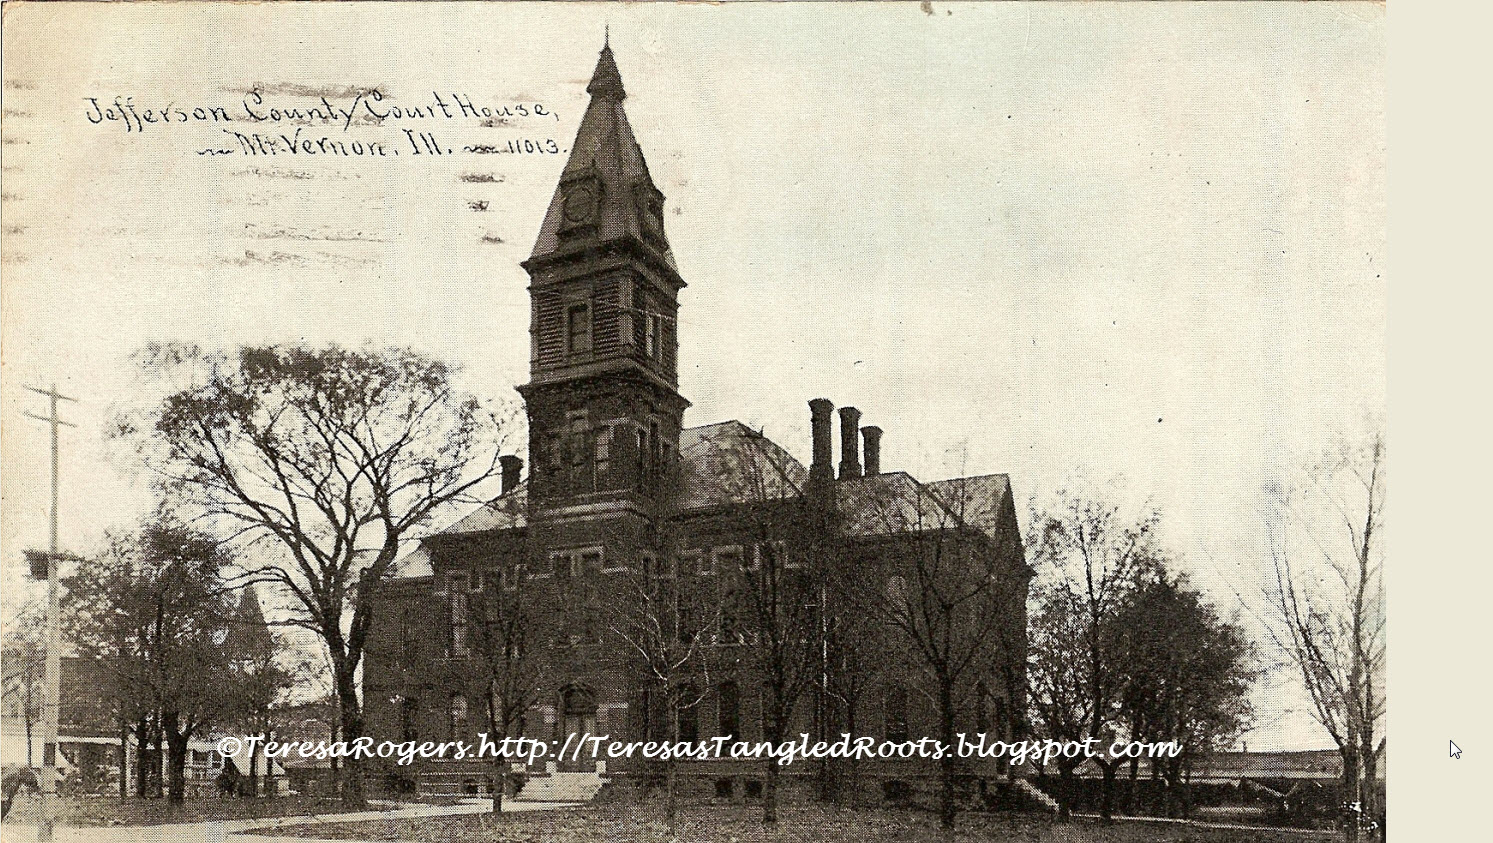 Illinois jefferson county ina - Jefferson Co Courthouse Postcard Postmarked Sep 1913